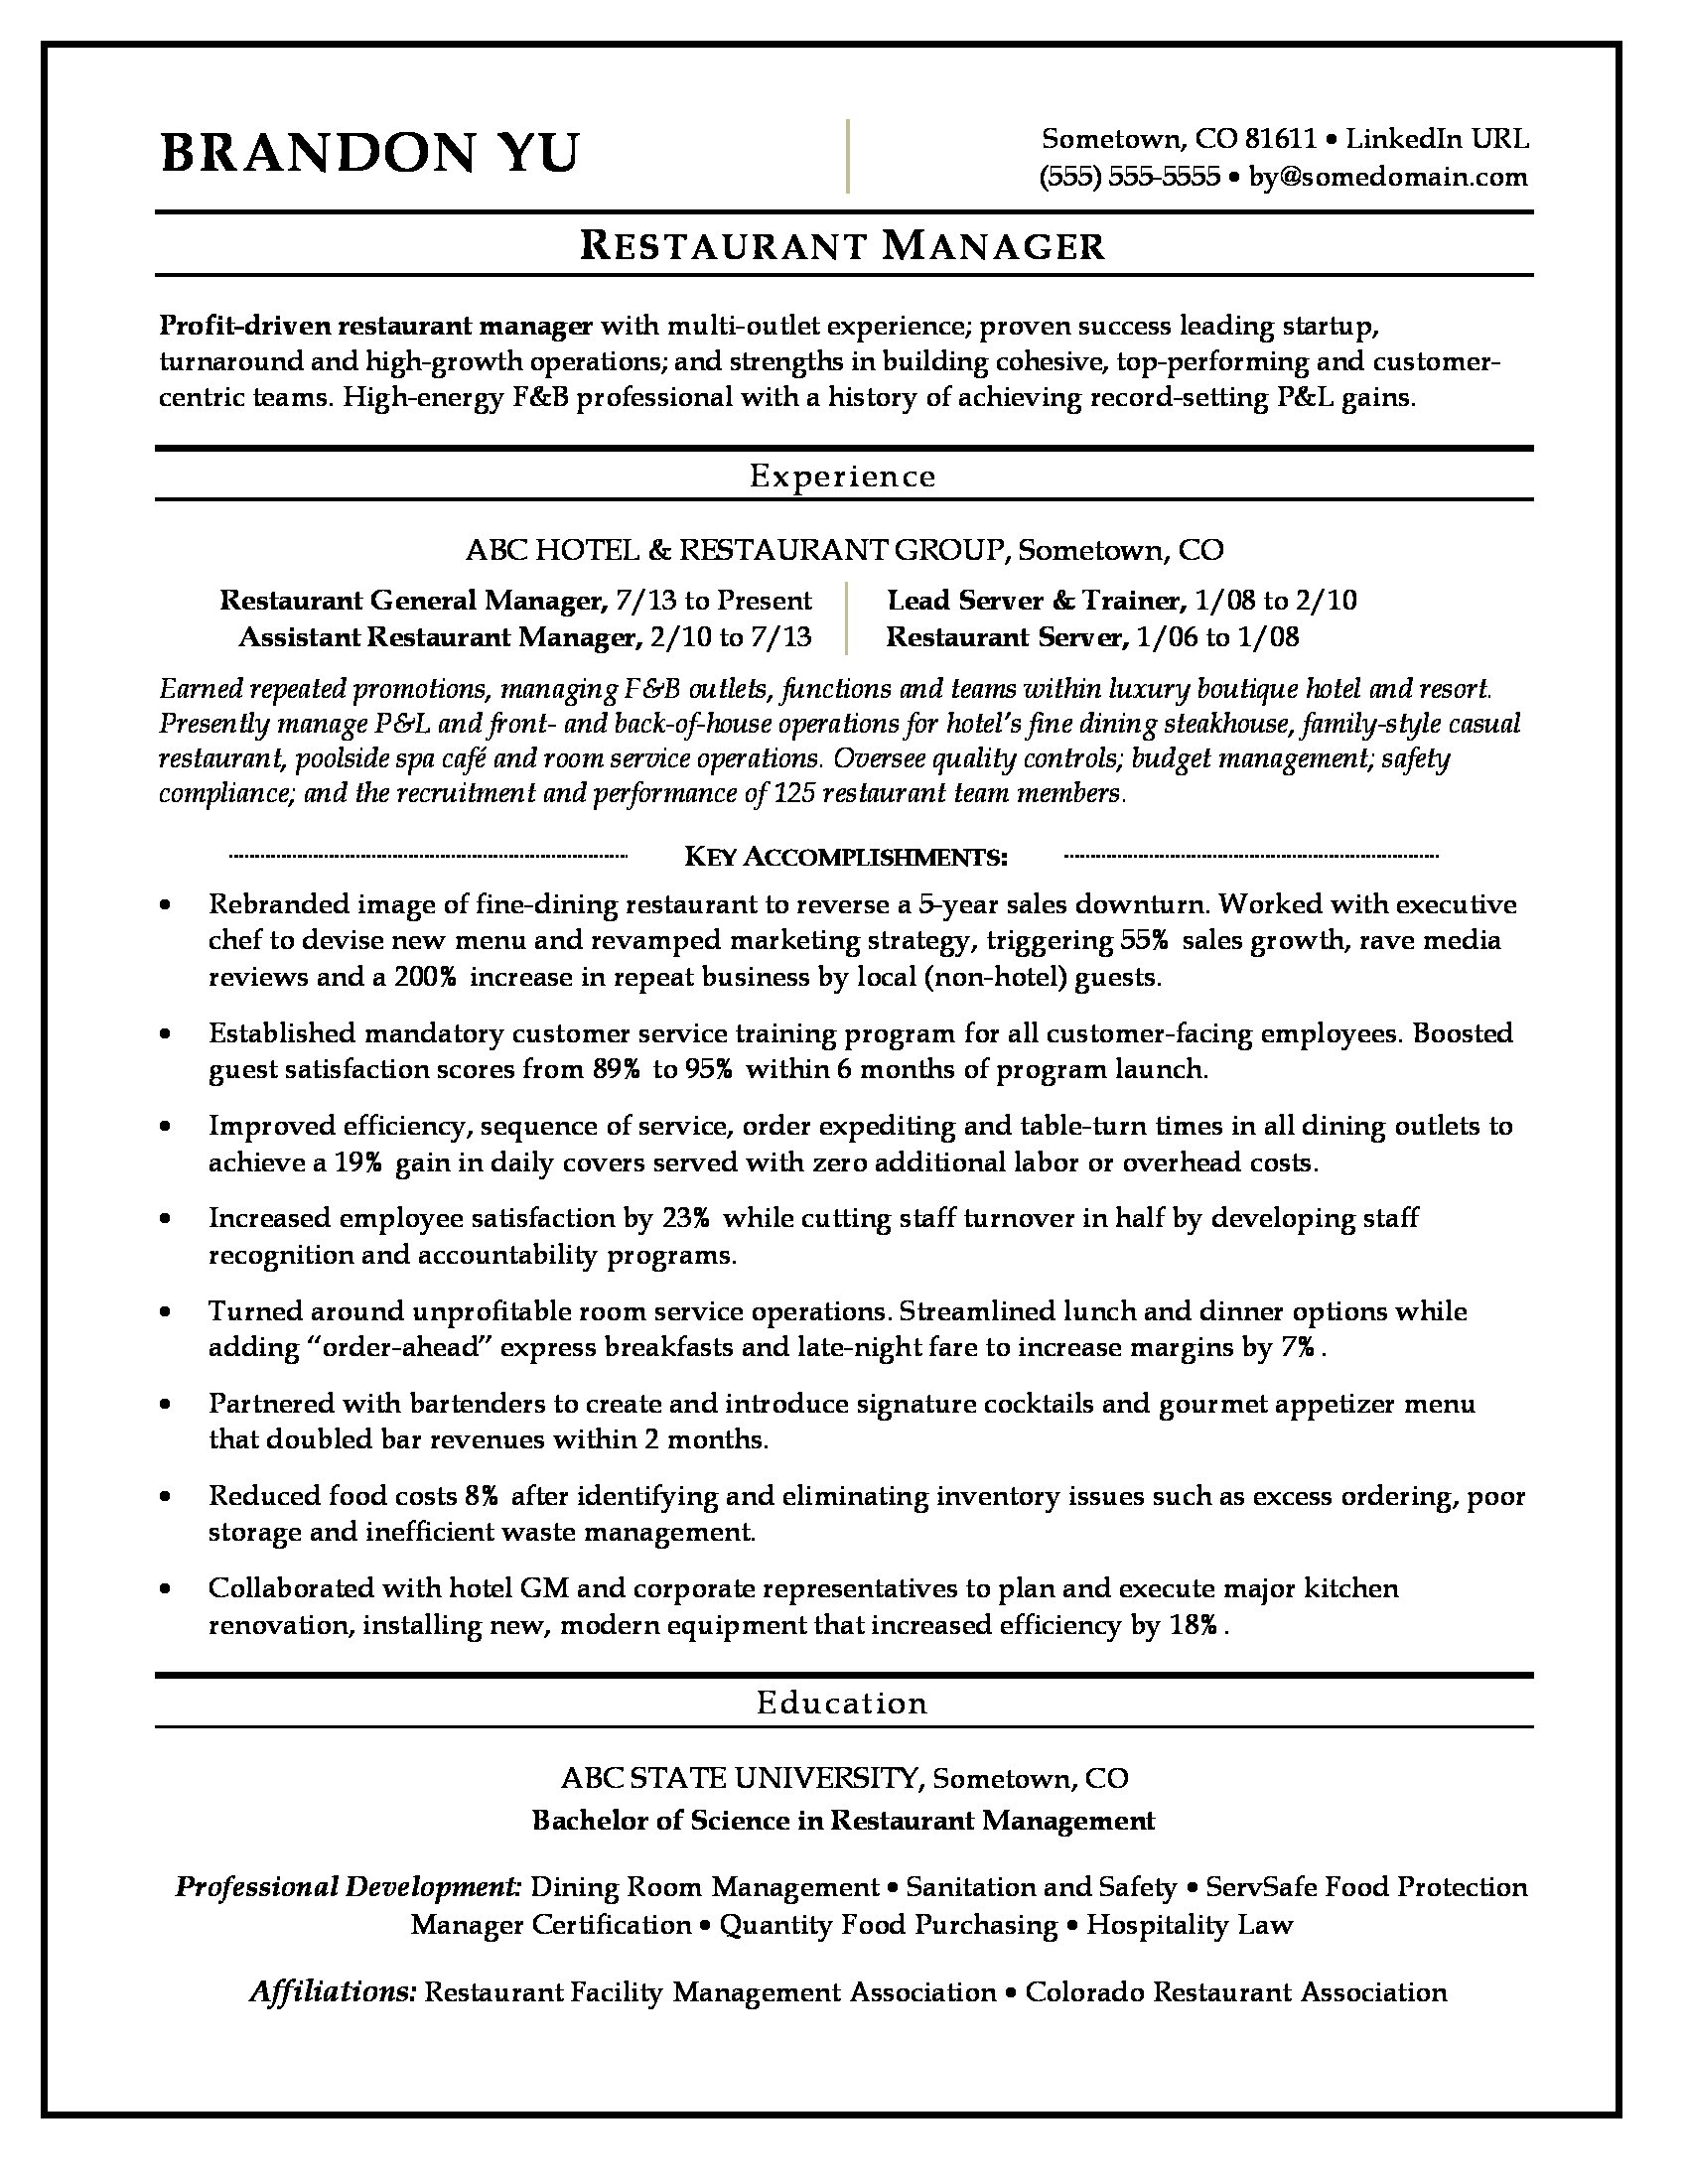 Sample Resume For A Restaurant Manager  Food Service Resumes